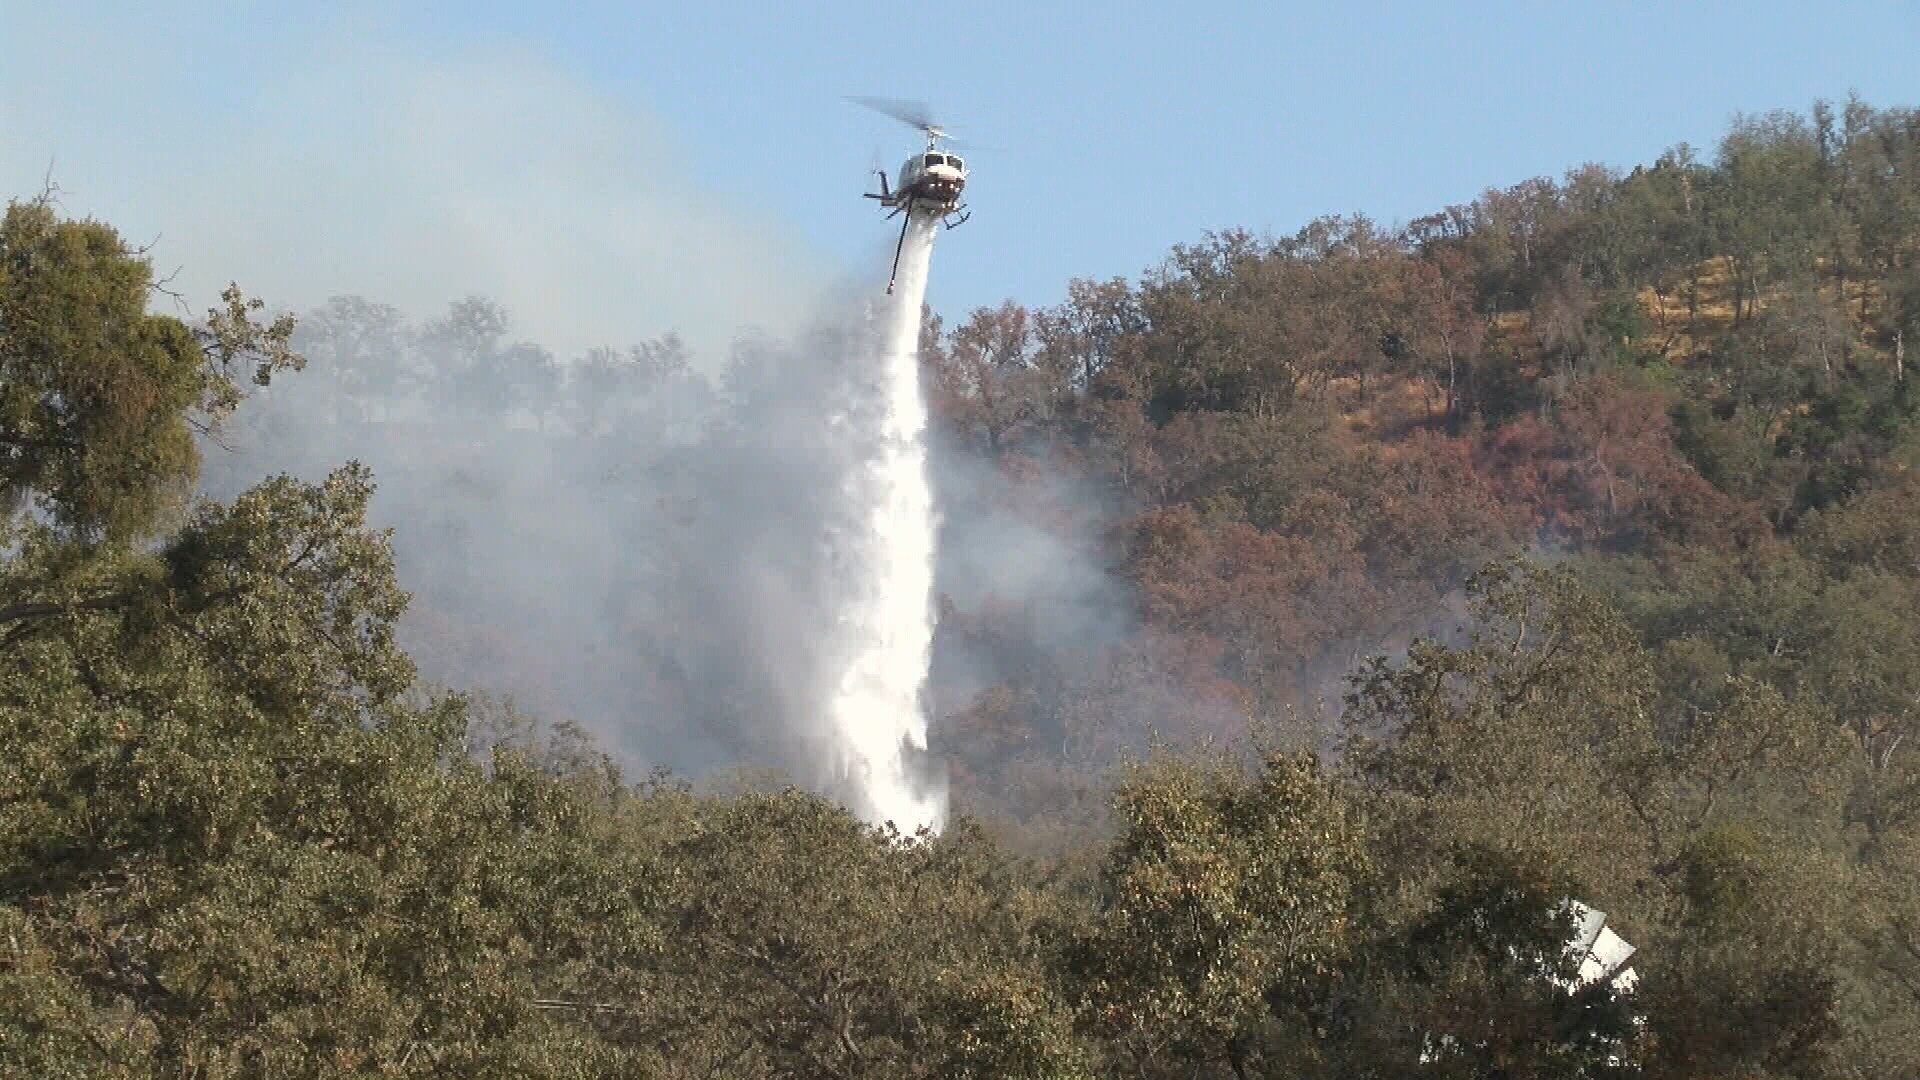 A helicopter drops water on the Pozo fire. (KSBY photo)